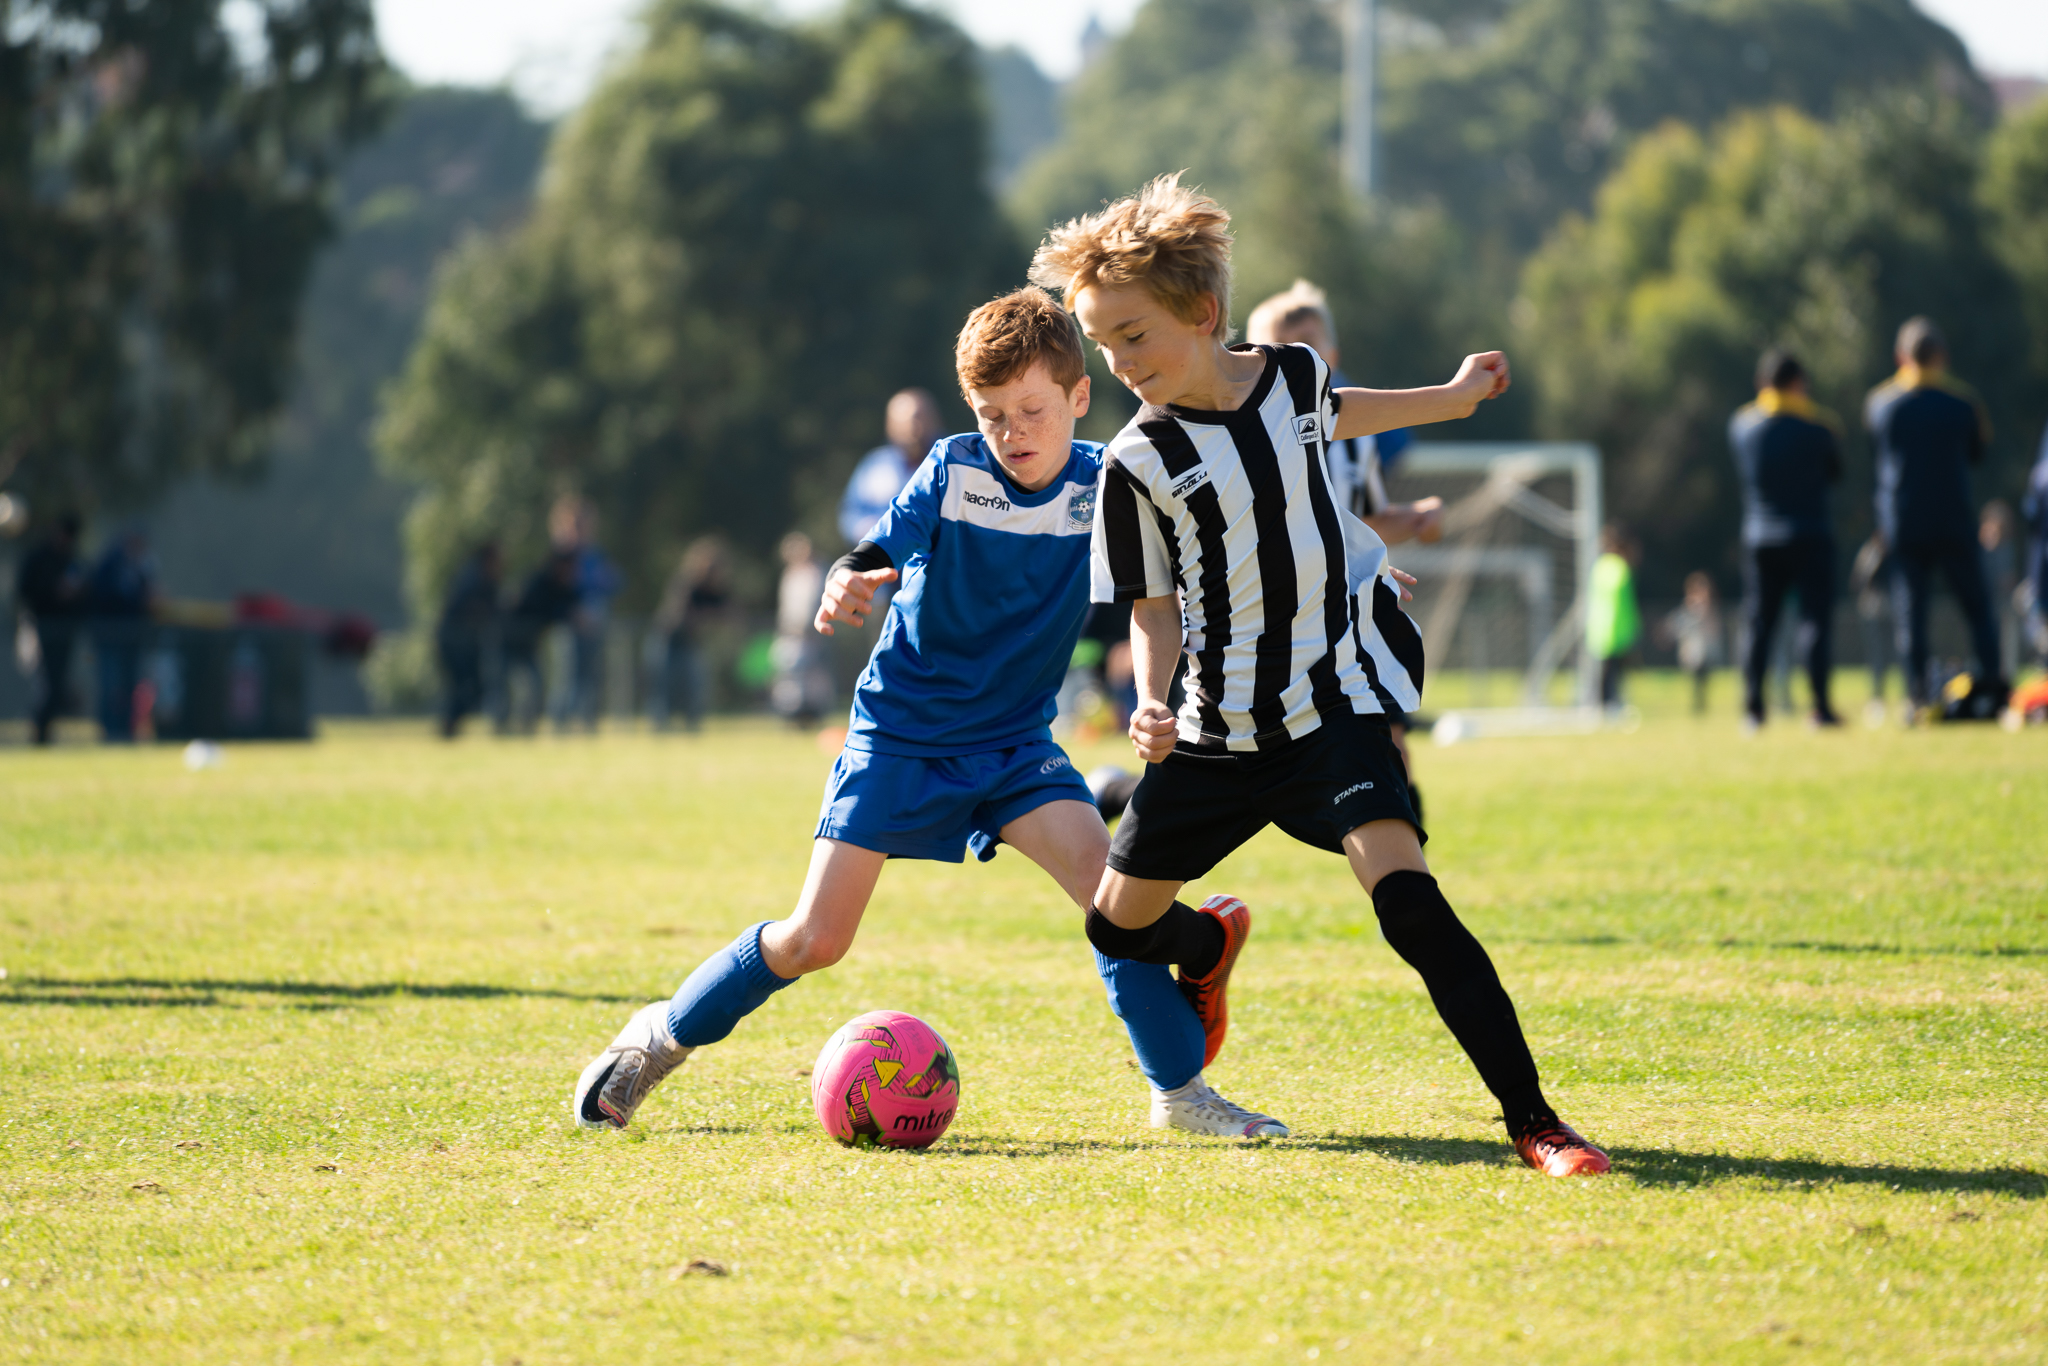 The Weekly Photography Challenge – Sports